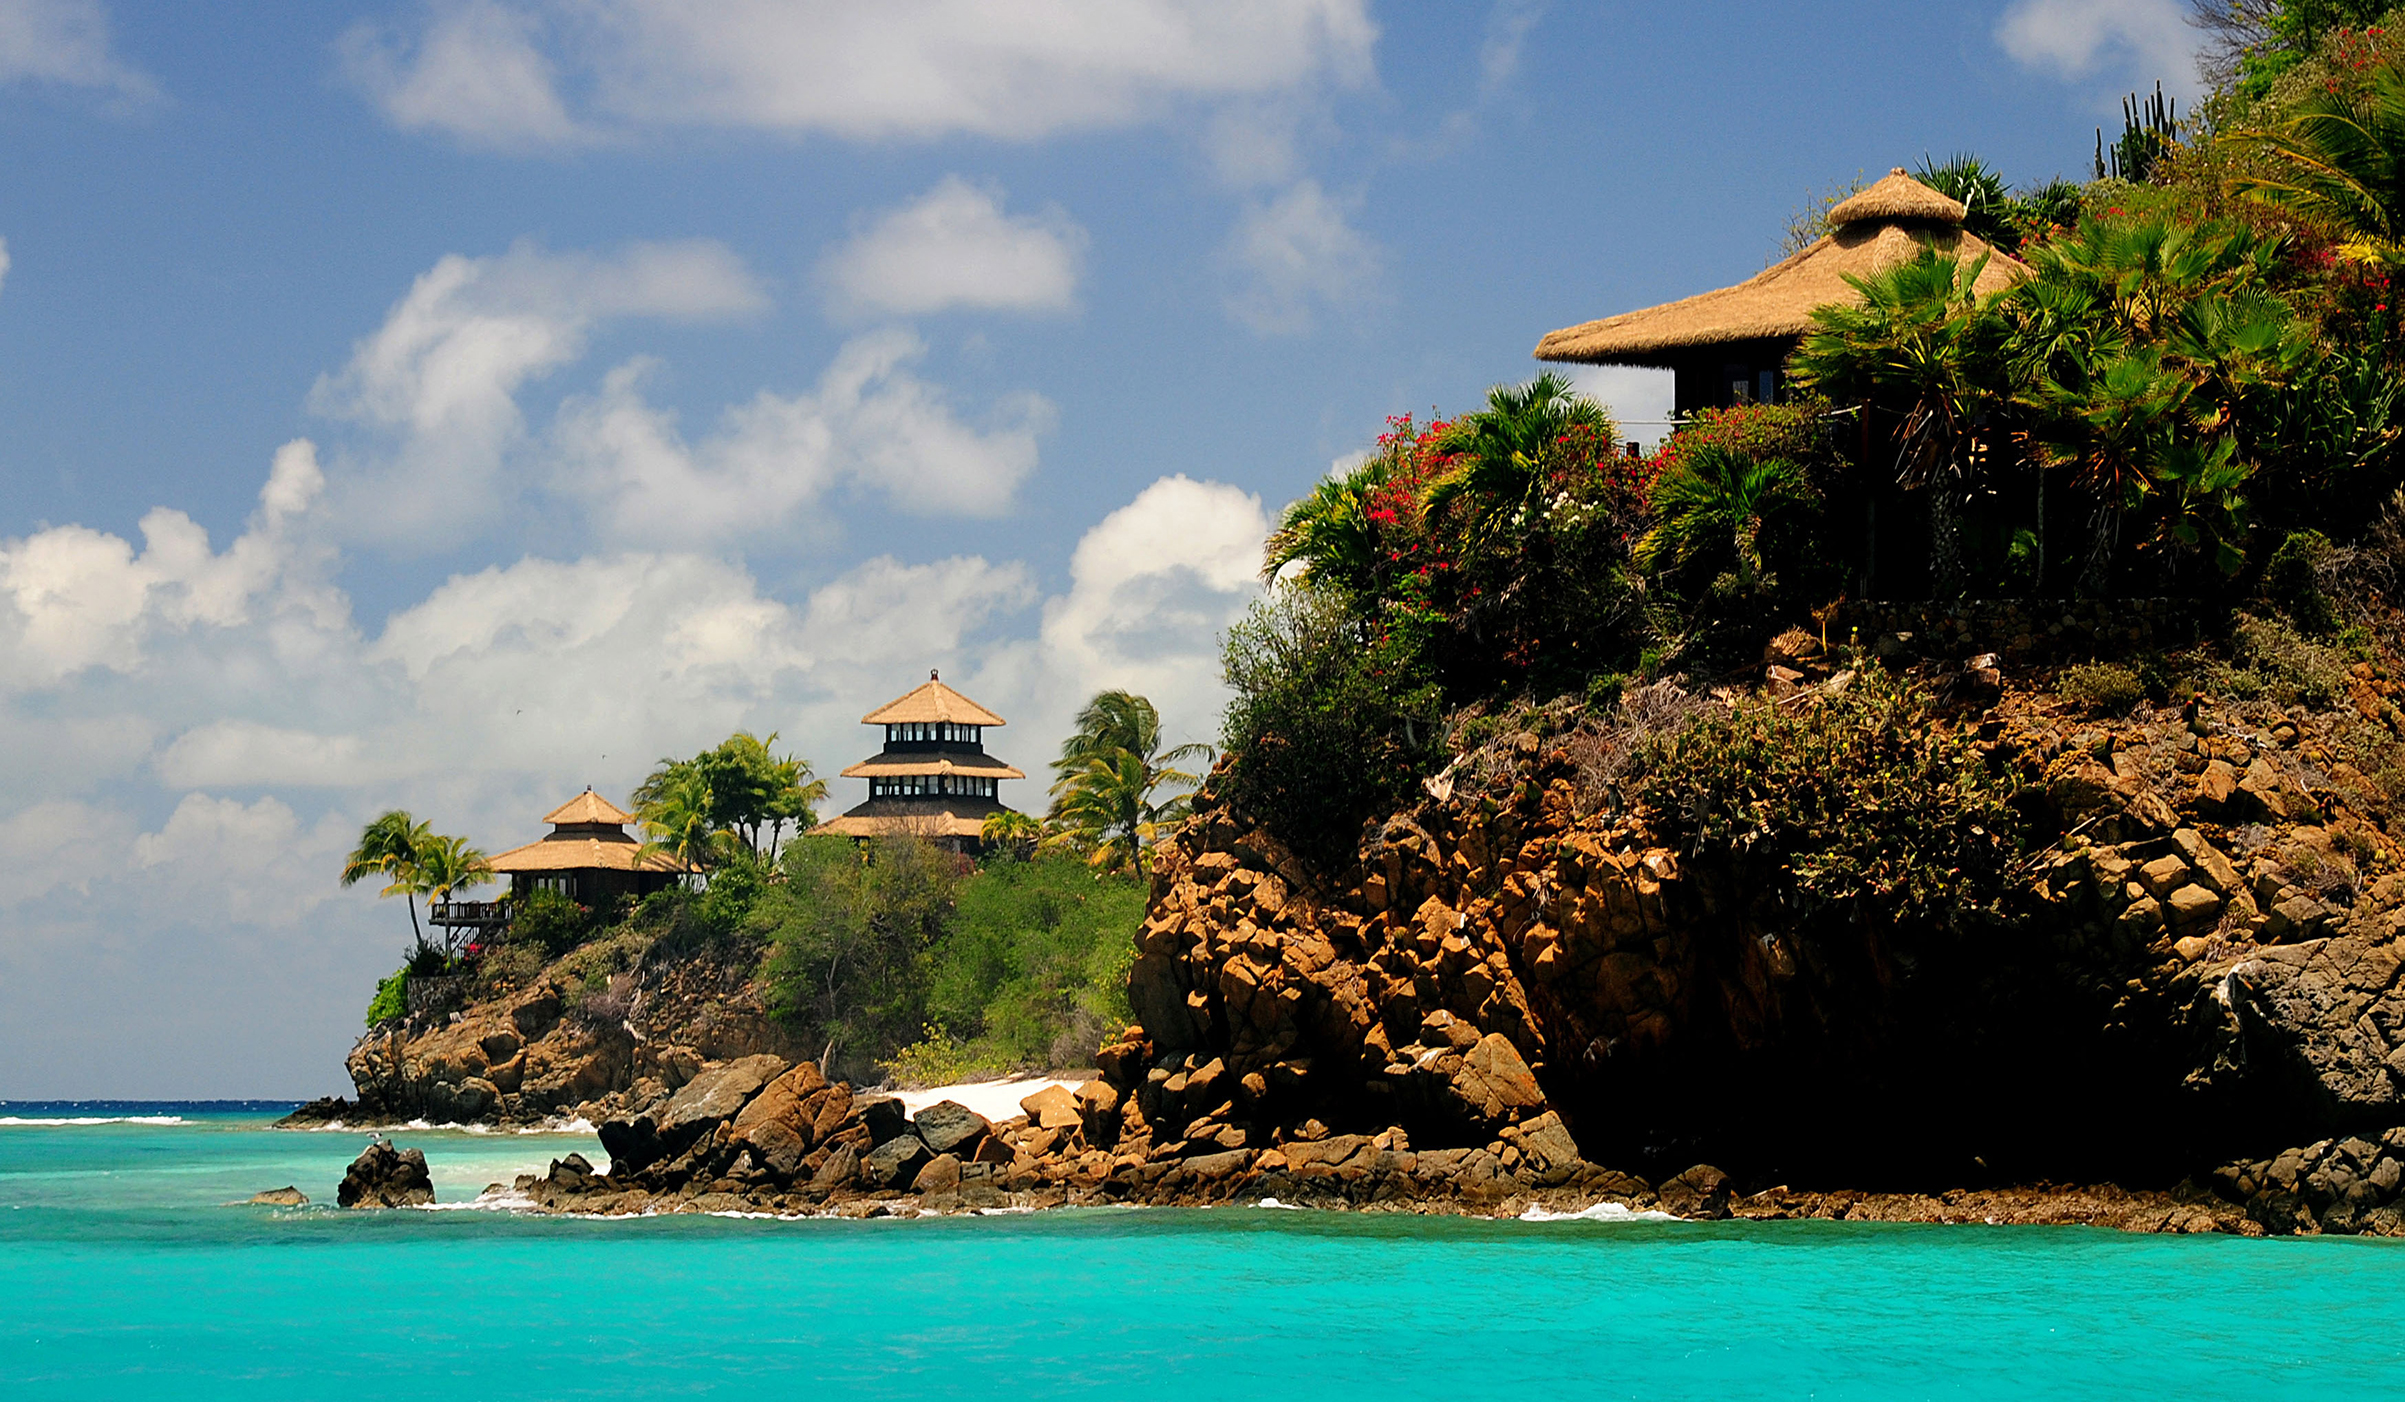 Buildings line the shore of Necker Island in the British Virgin Islands, May 17, 2013.